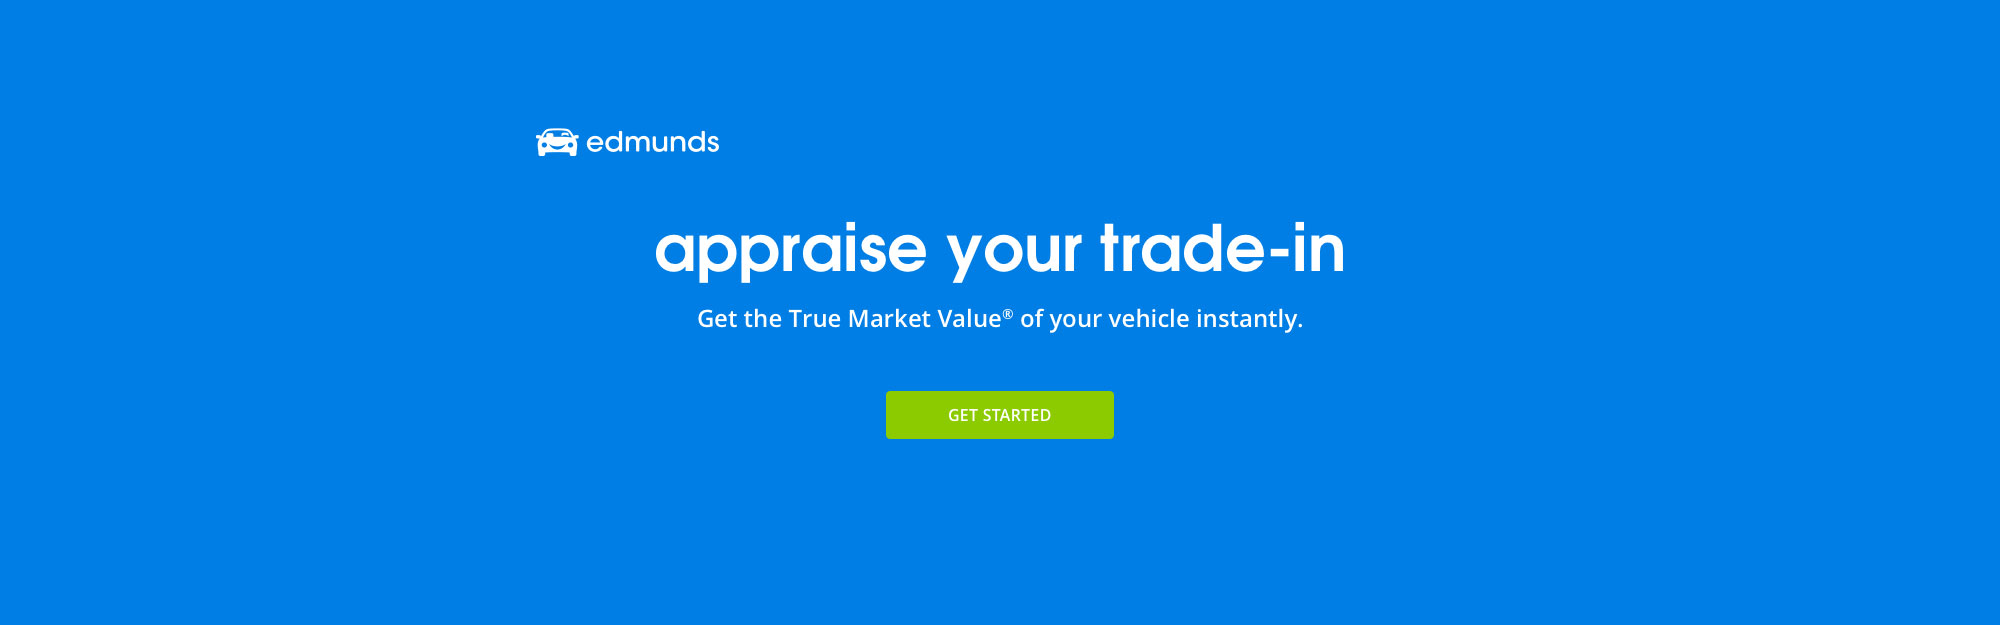 Appraise Your Trade-In